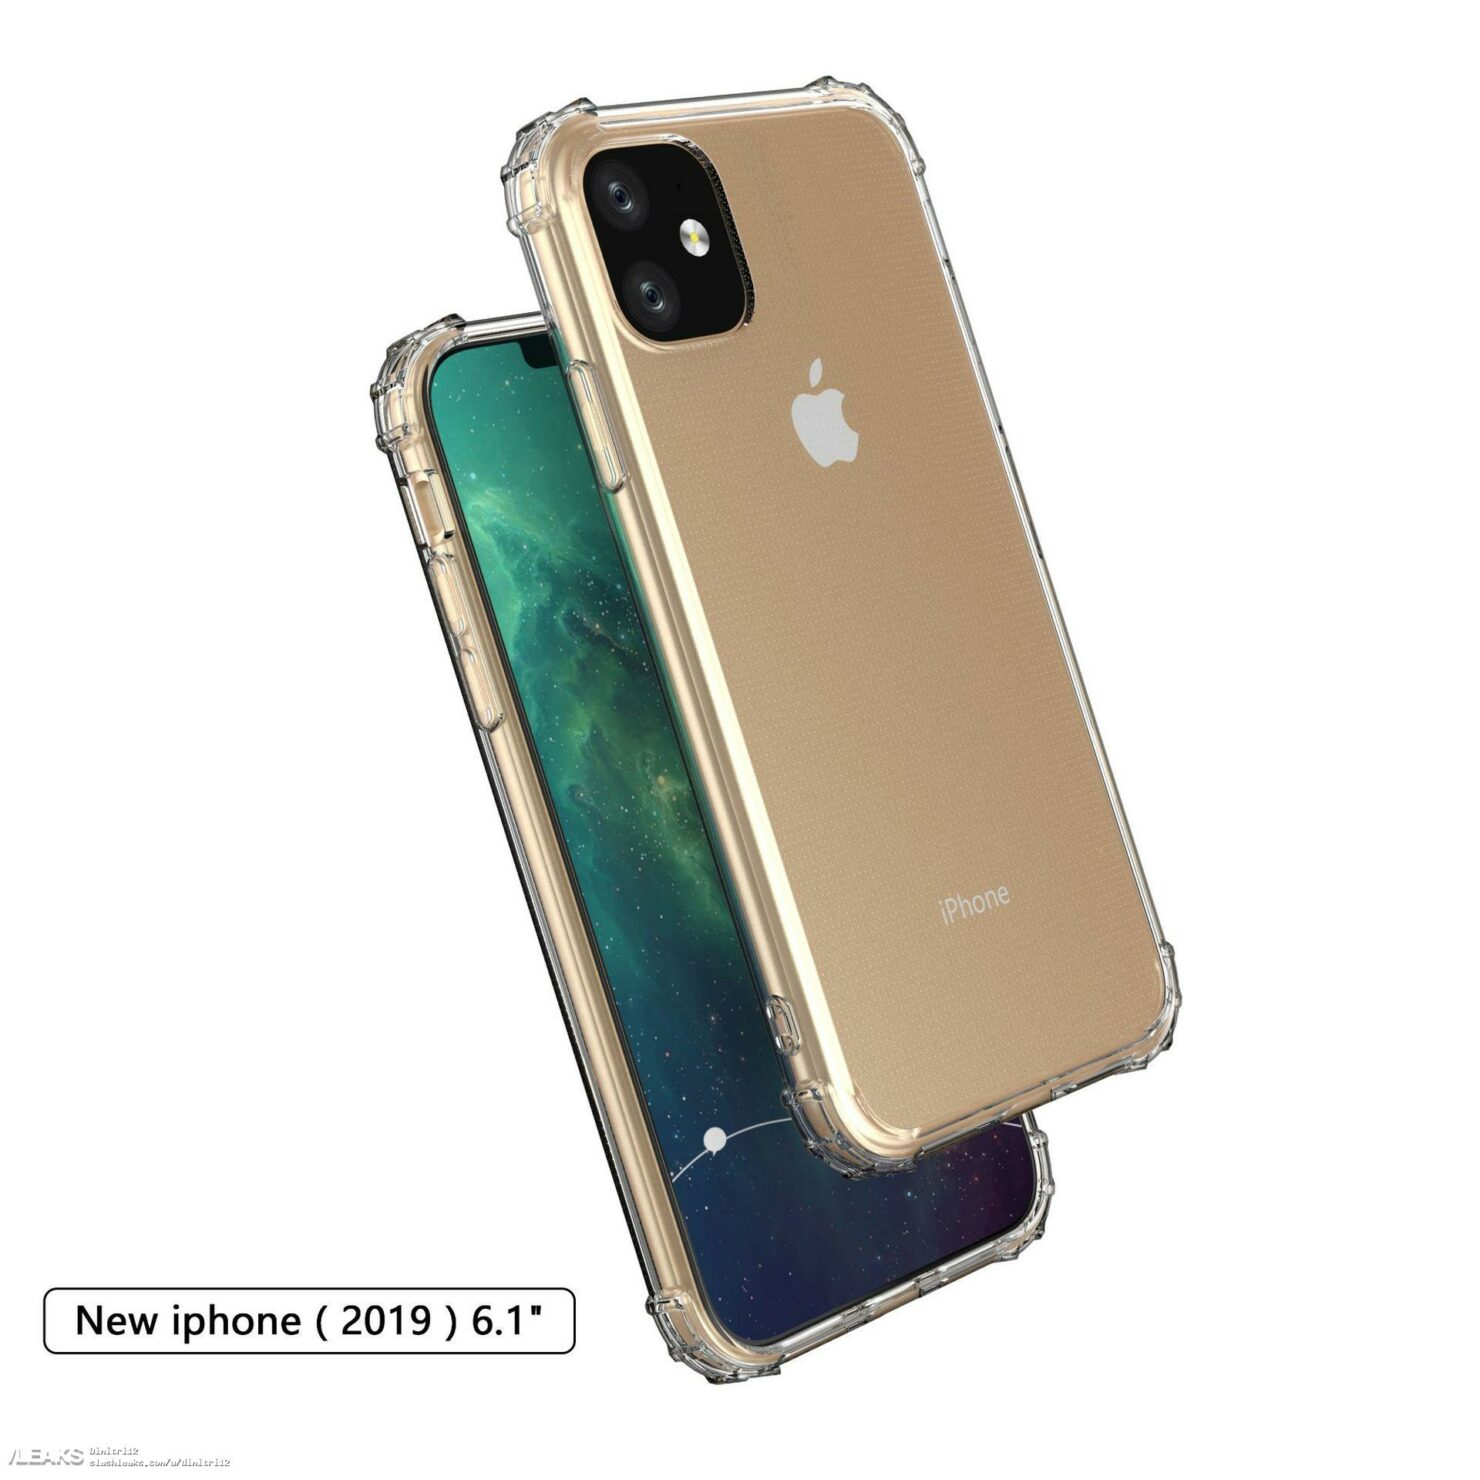 iphone-xir-case-matches-previously-leaked-design-272